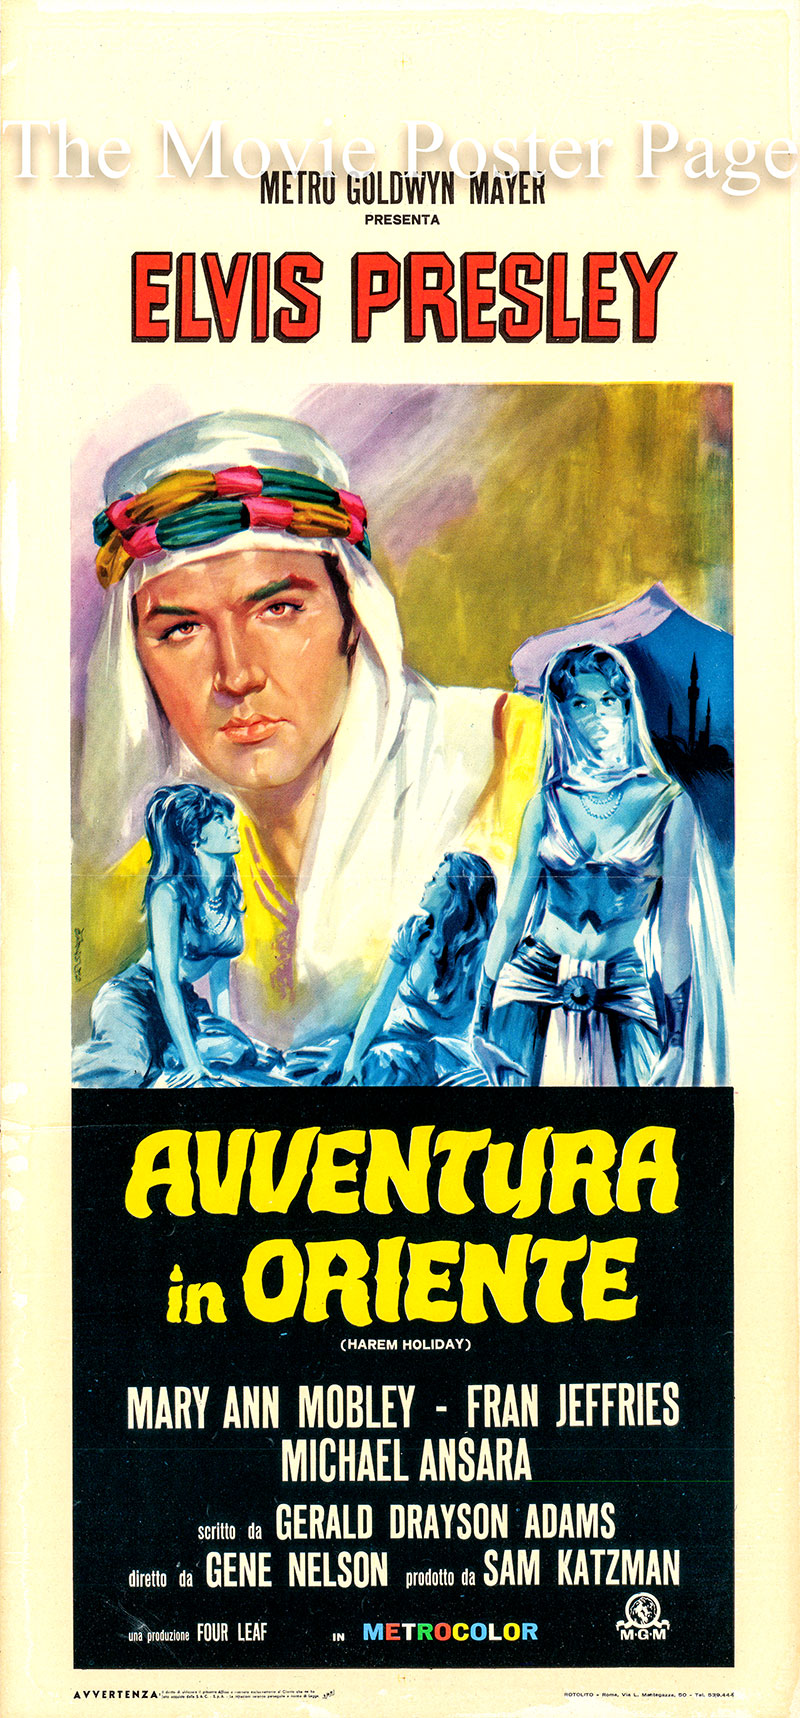 Pictured is an Italian locandina poster for the 1965 Gene Nelson film Harum Scarum starring Elvis Presley as Johnny Tyrone.